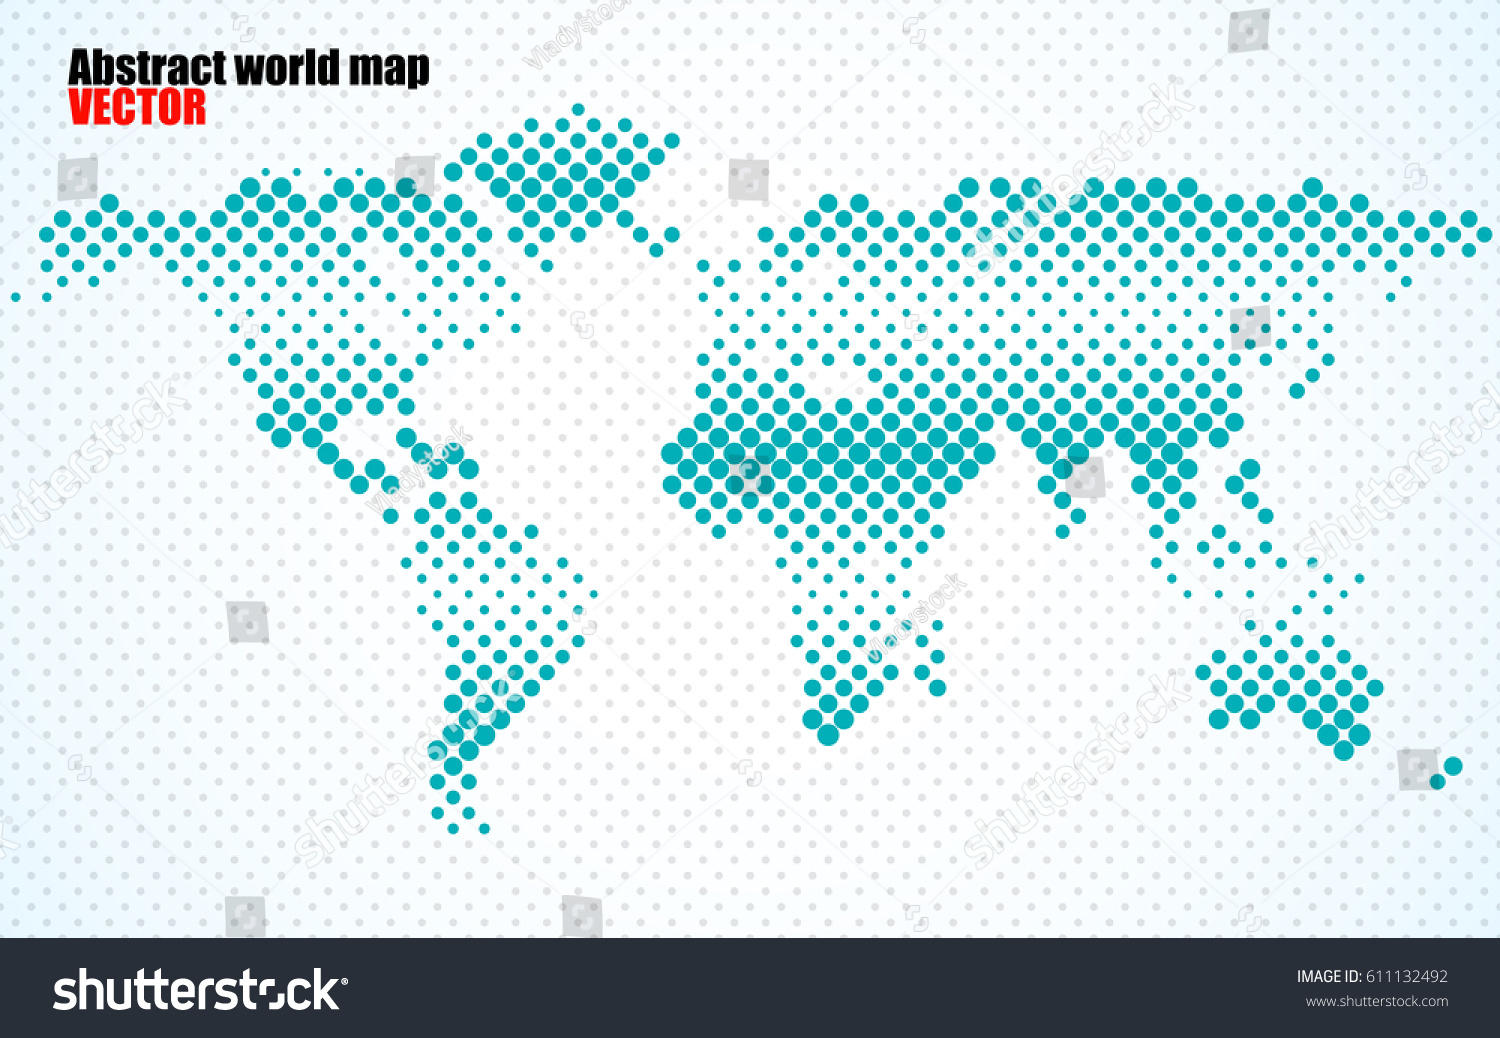 Abstract halftone world map vector stock vector 611132492 shutterstock abstract halftone world map vector gumiabroncs Images